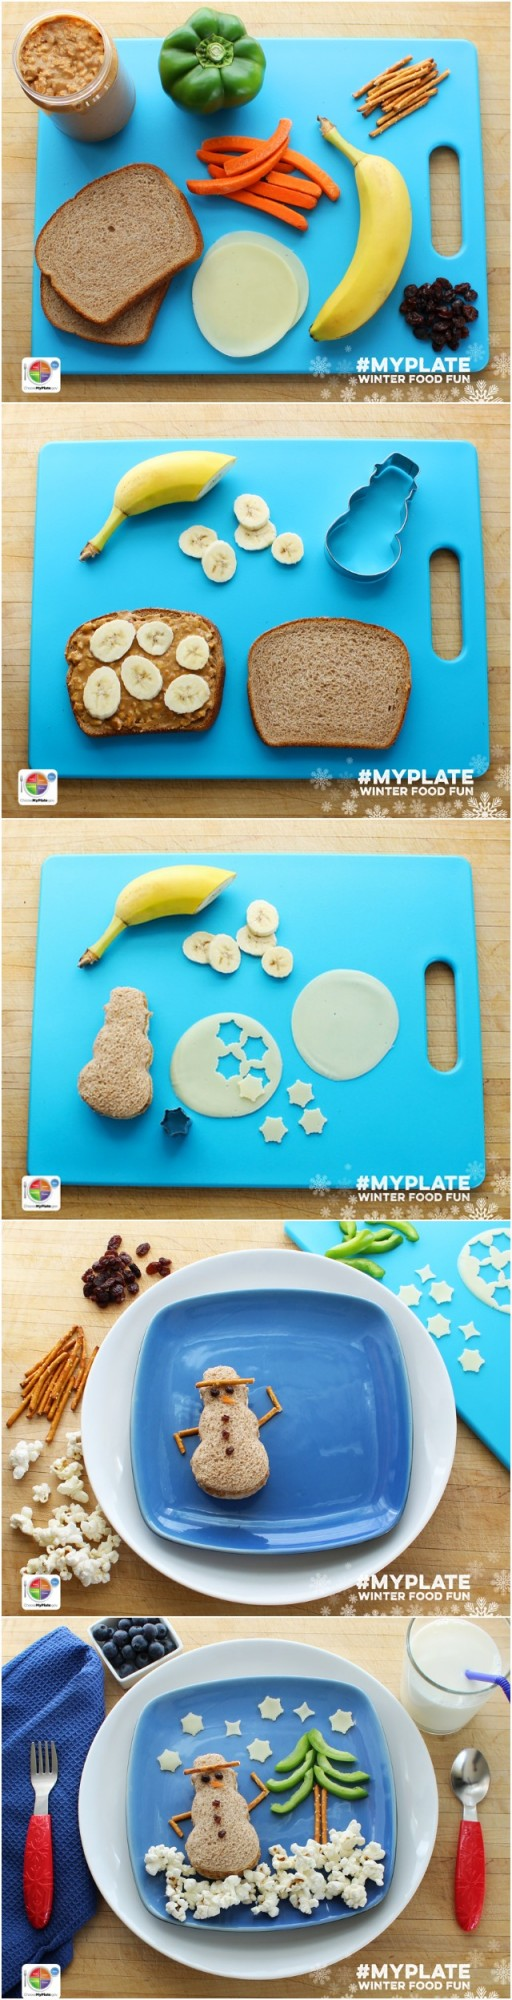 How to make an Edible MyPlate Snowman